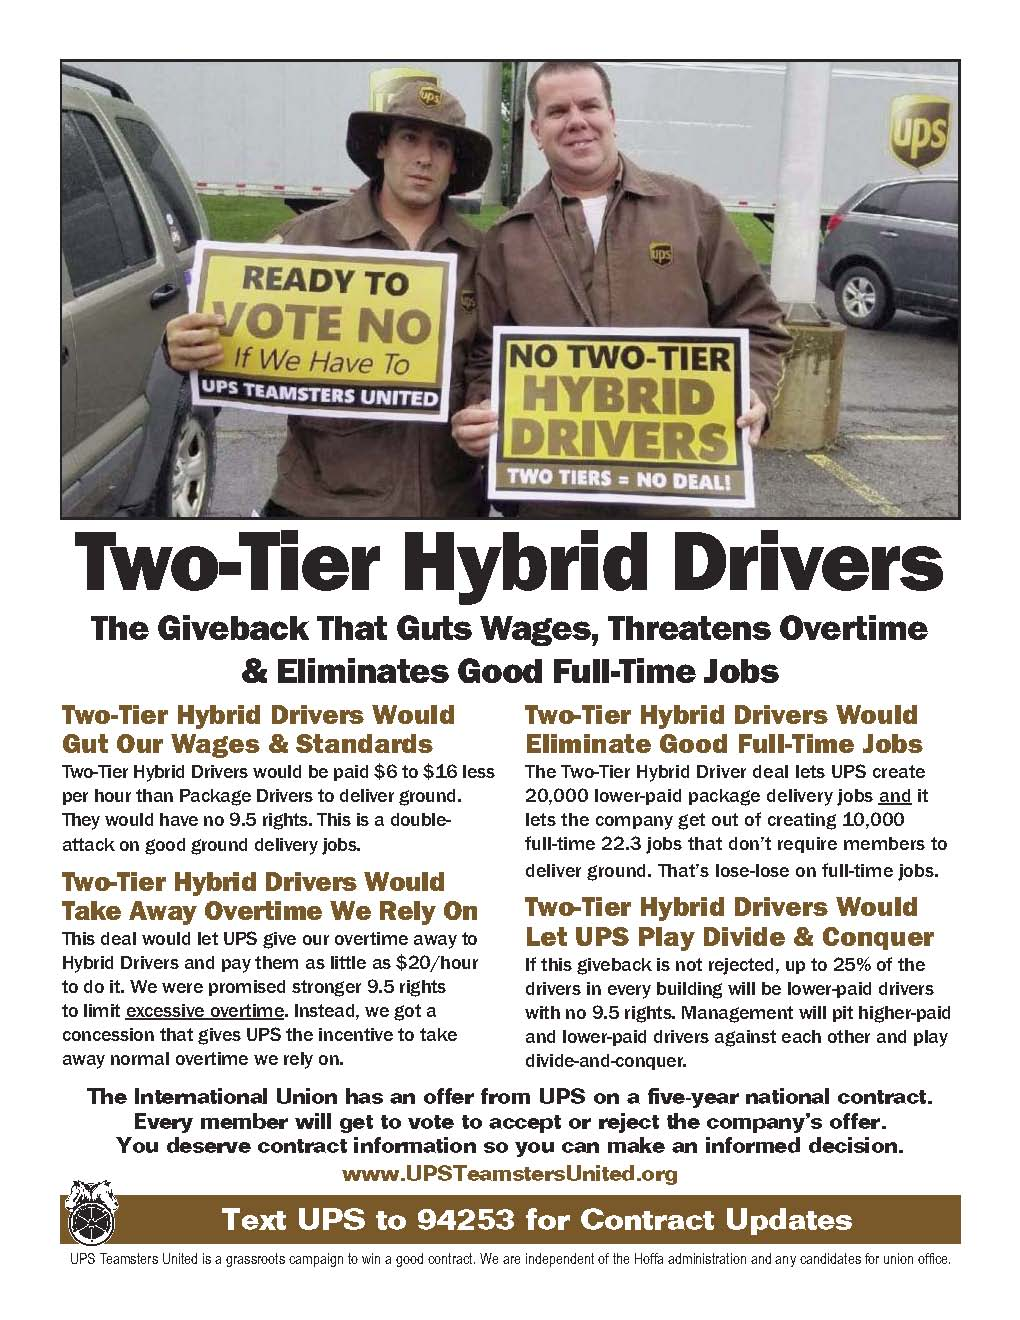 Hybrid-Drivers-Guts-Wages-Threaten-Overtime-Eliminate-FTJobs.jpg